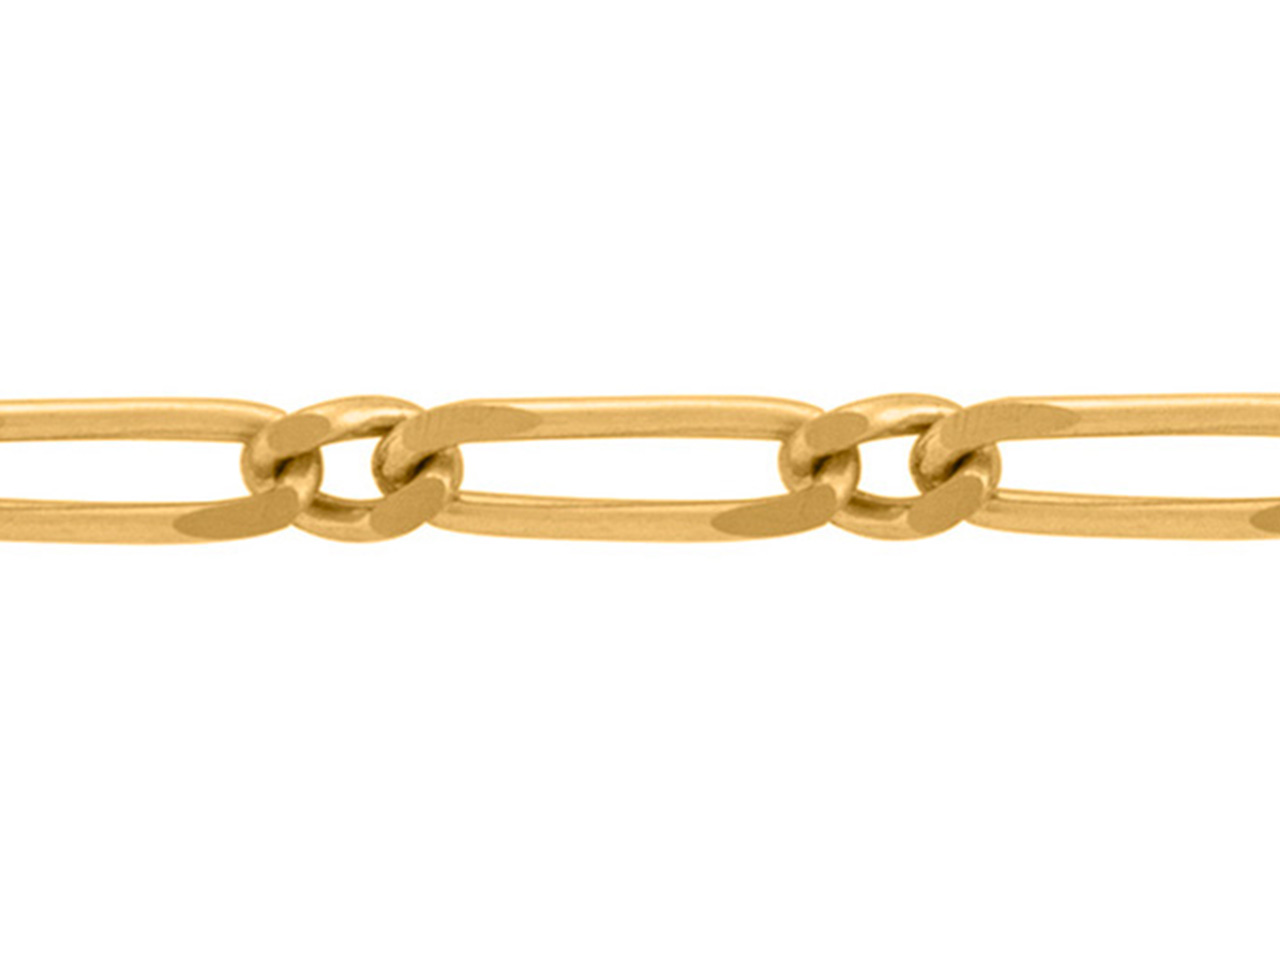 Chaine Figaro alternée 1/1, 4,5 mm, Or jaune 18k. Réf. 00959